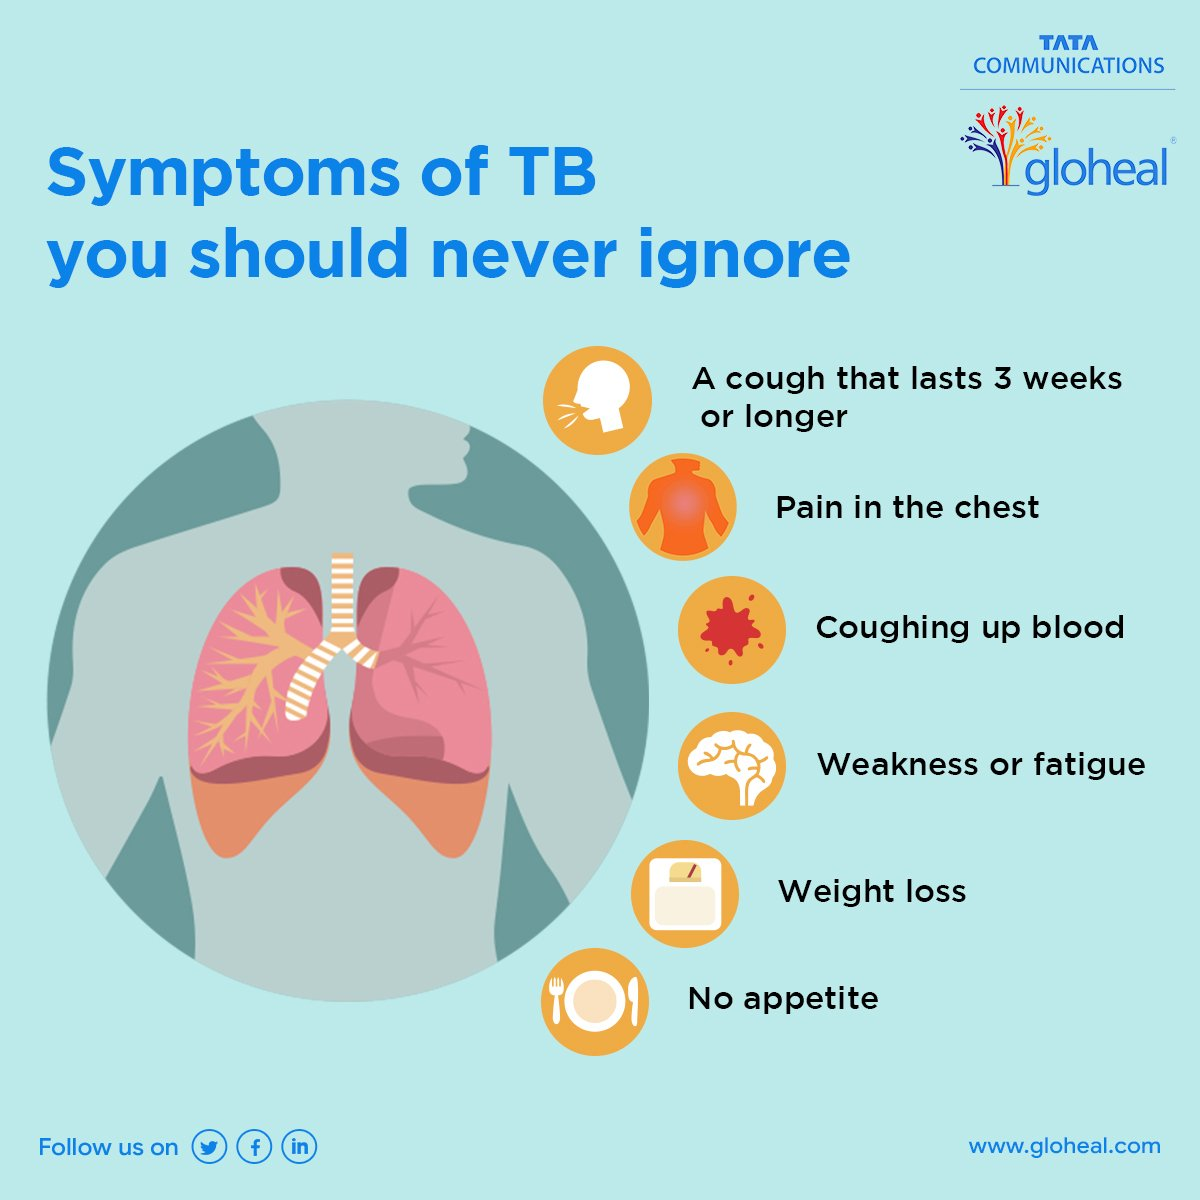 Tuberculosis (TB) is a highly contagious and infectious